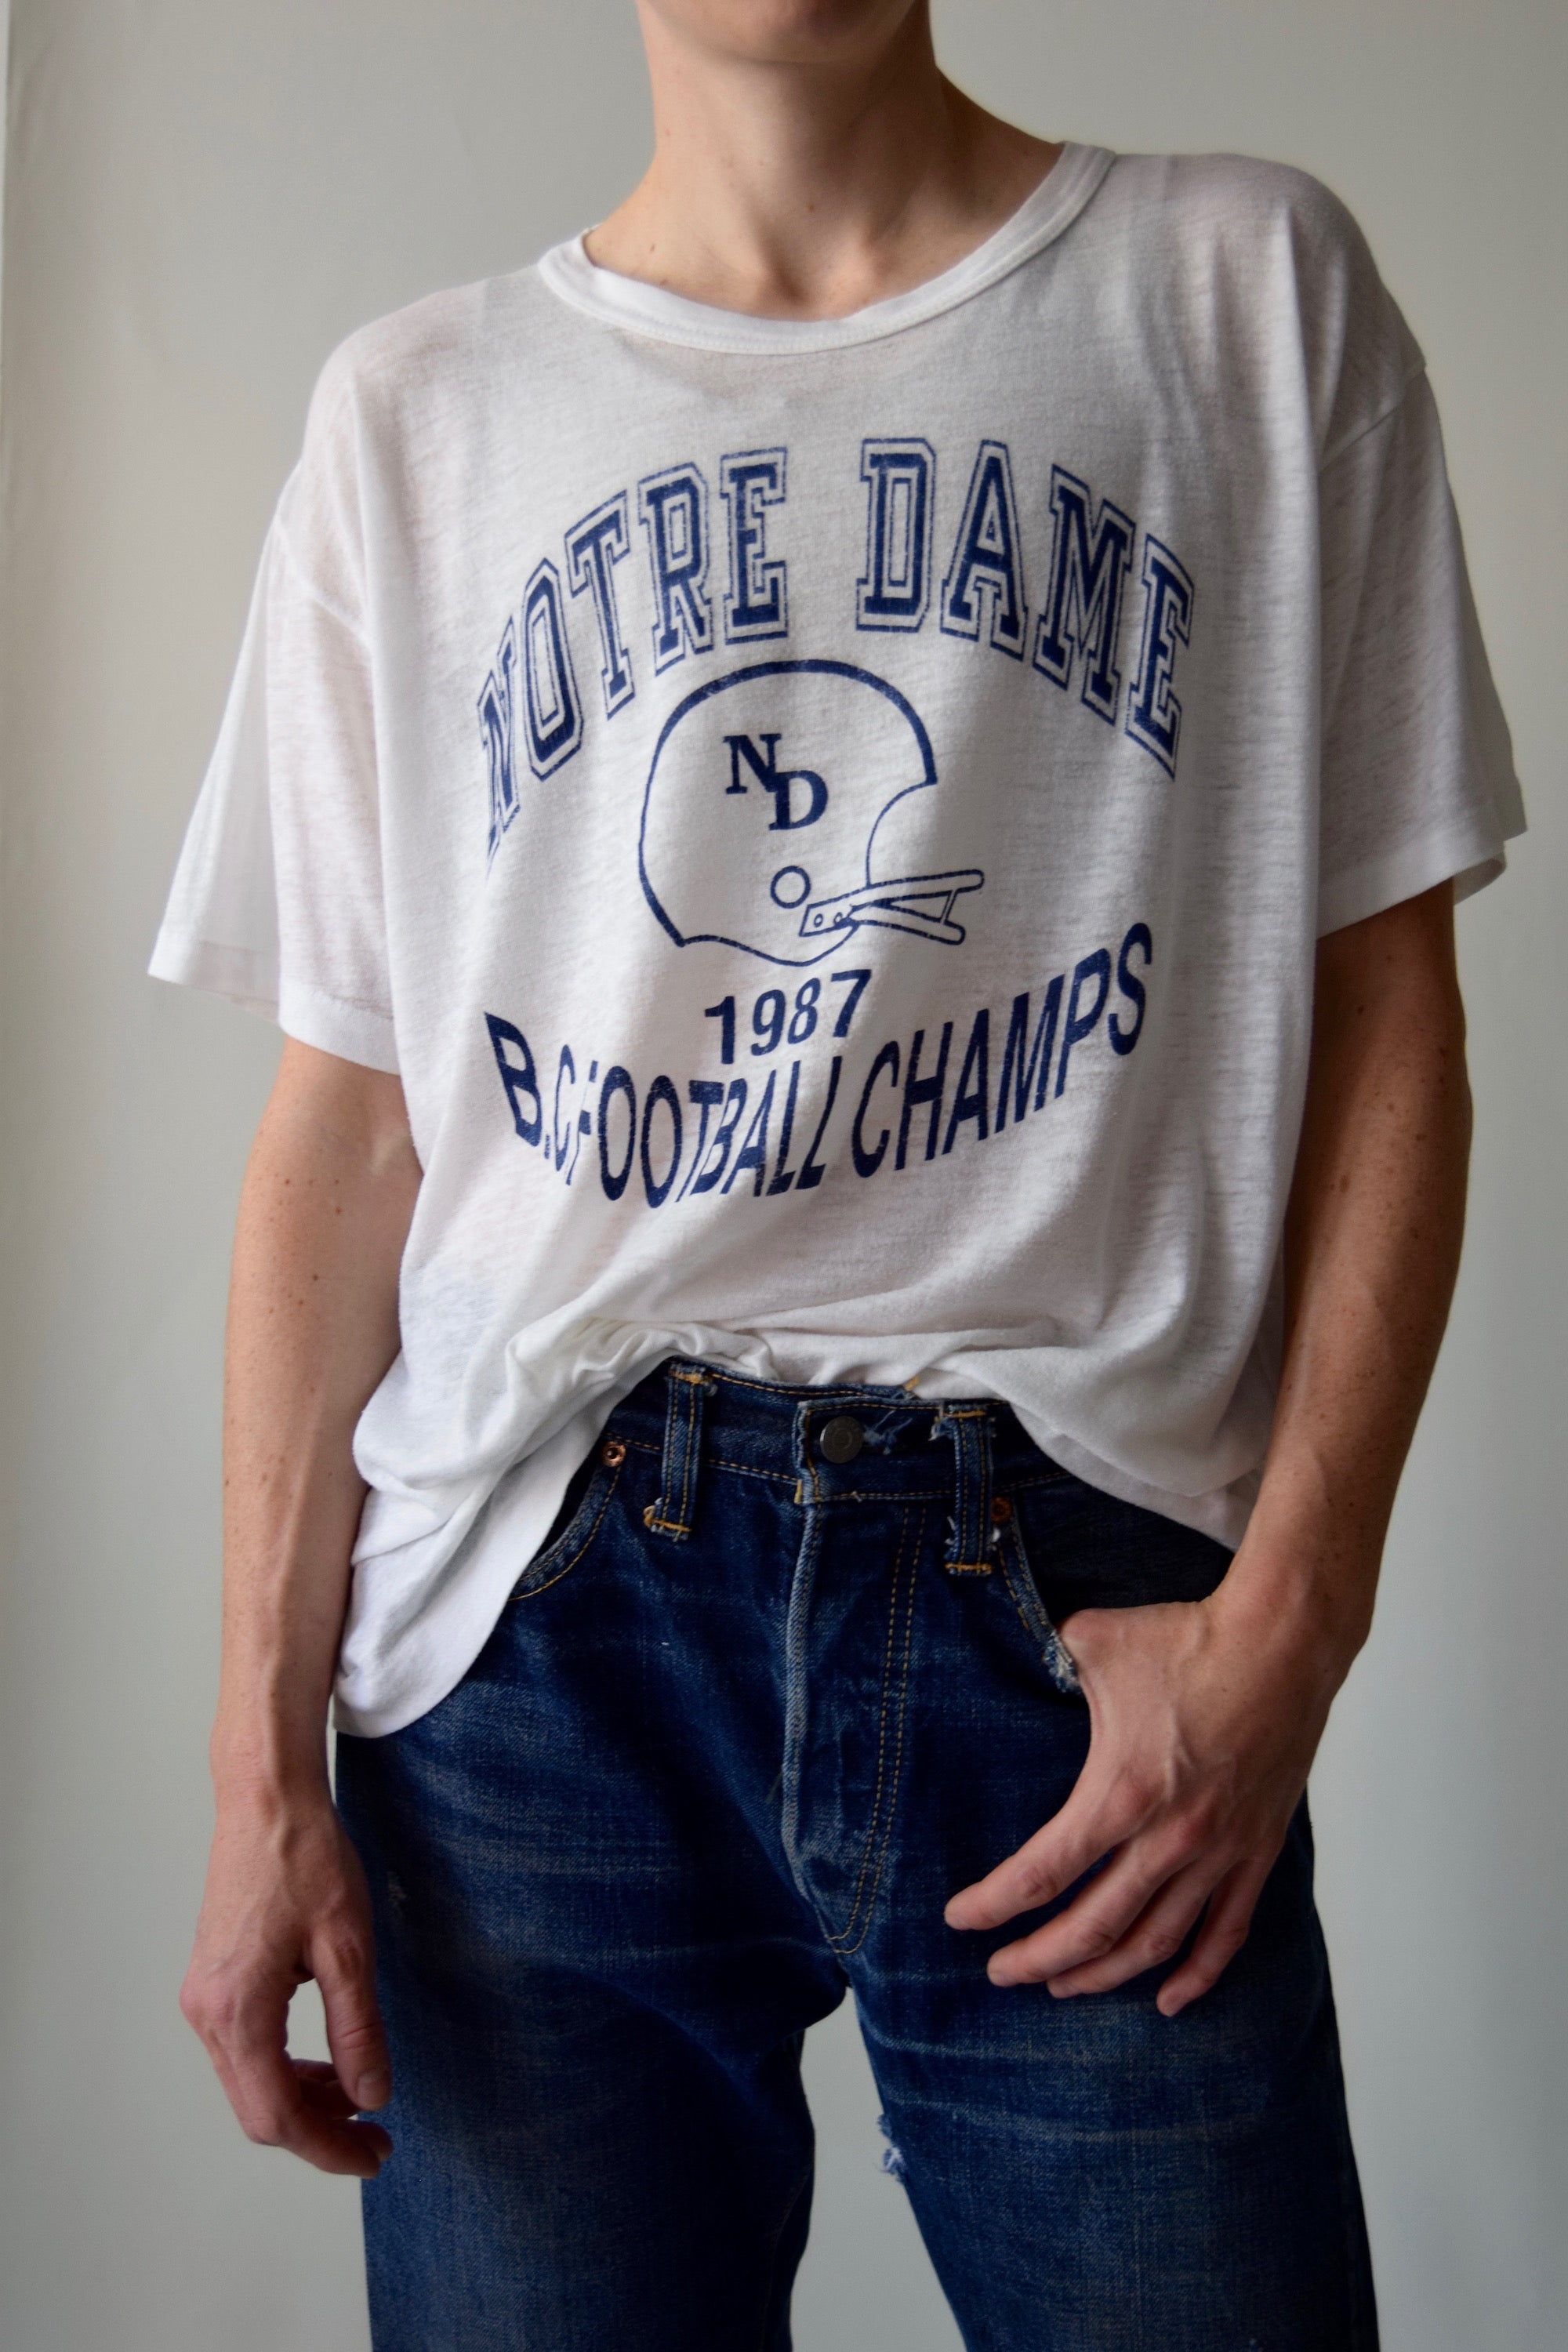 Vintage 1987 Threadbare Notre Dame T-Shirt FREE SHIPPING